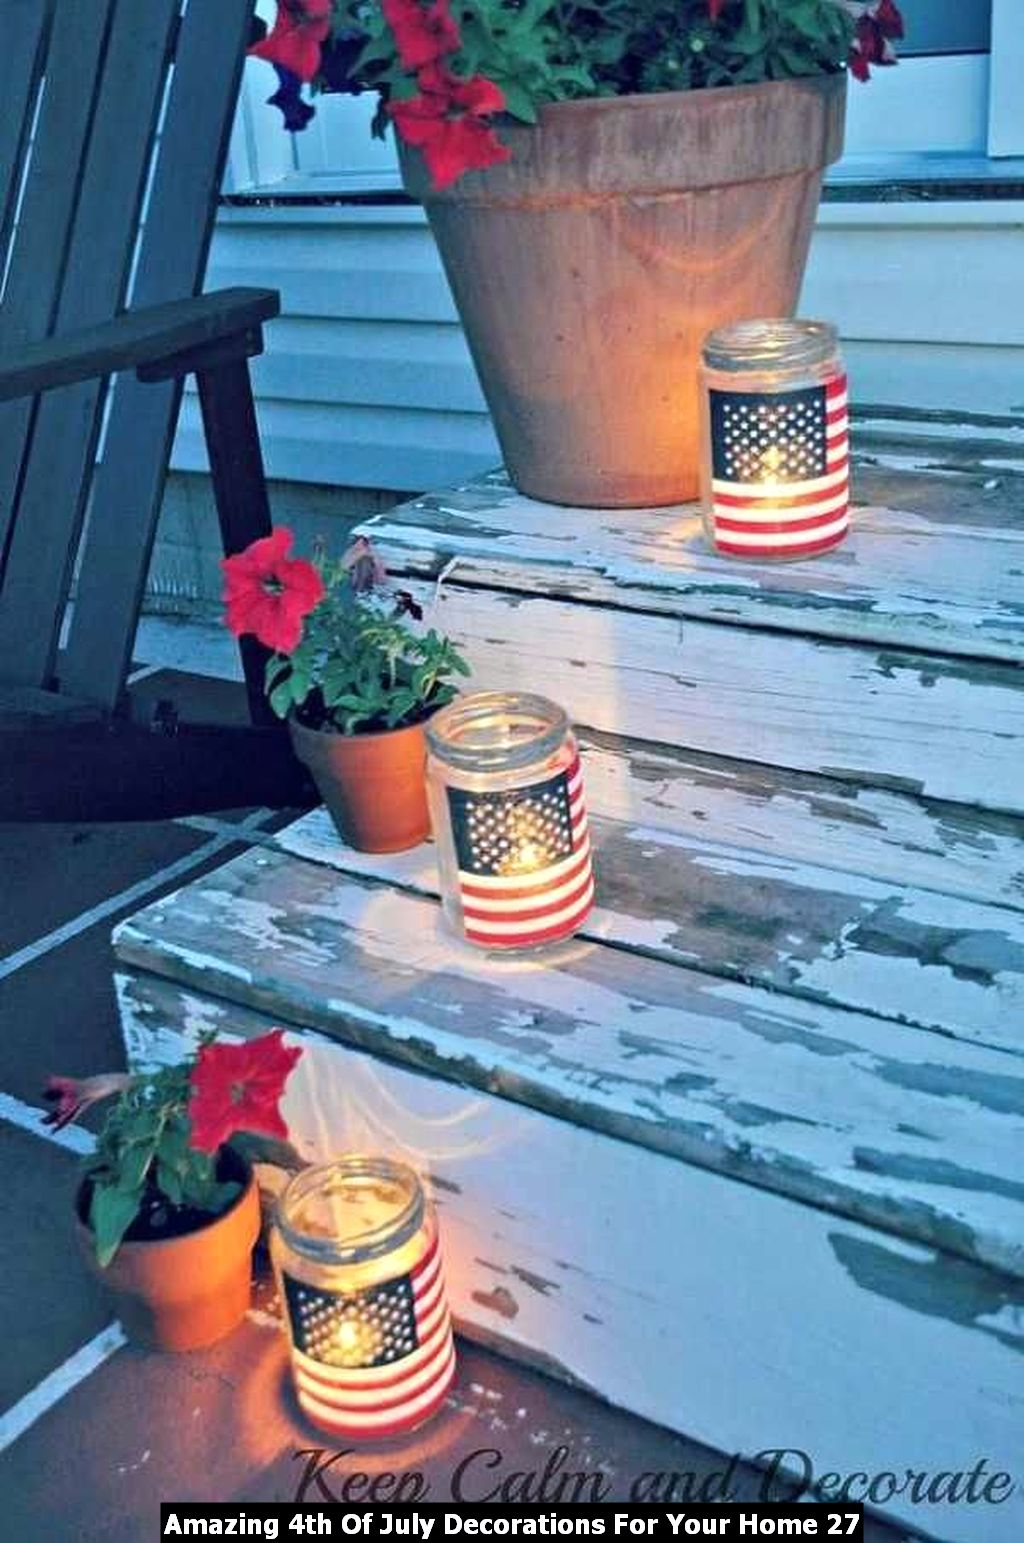 Amazing 4th Of July Decorations For Your Home 27